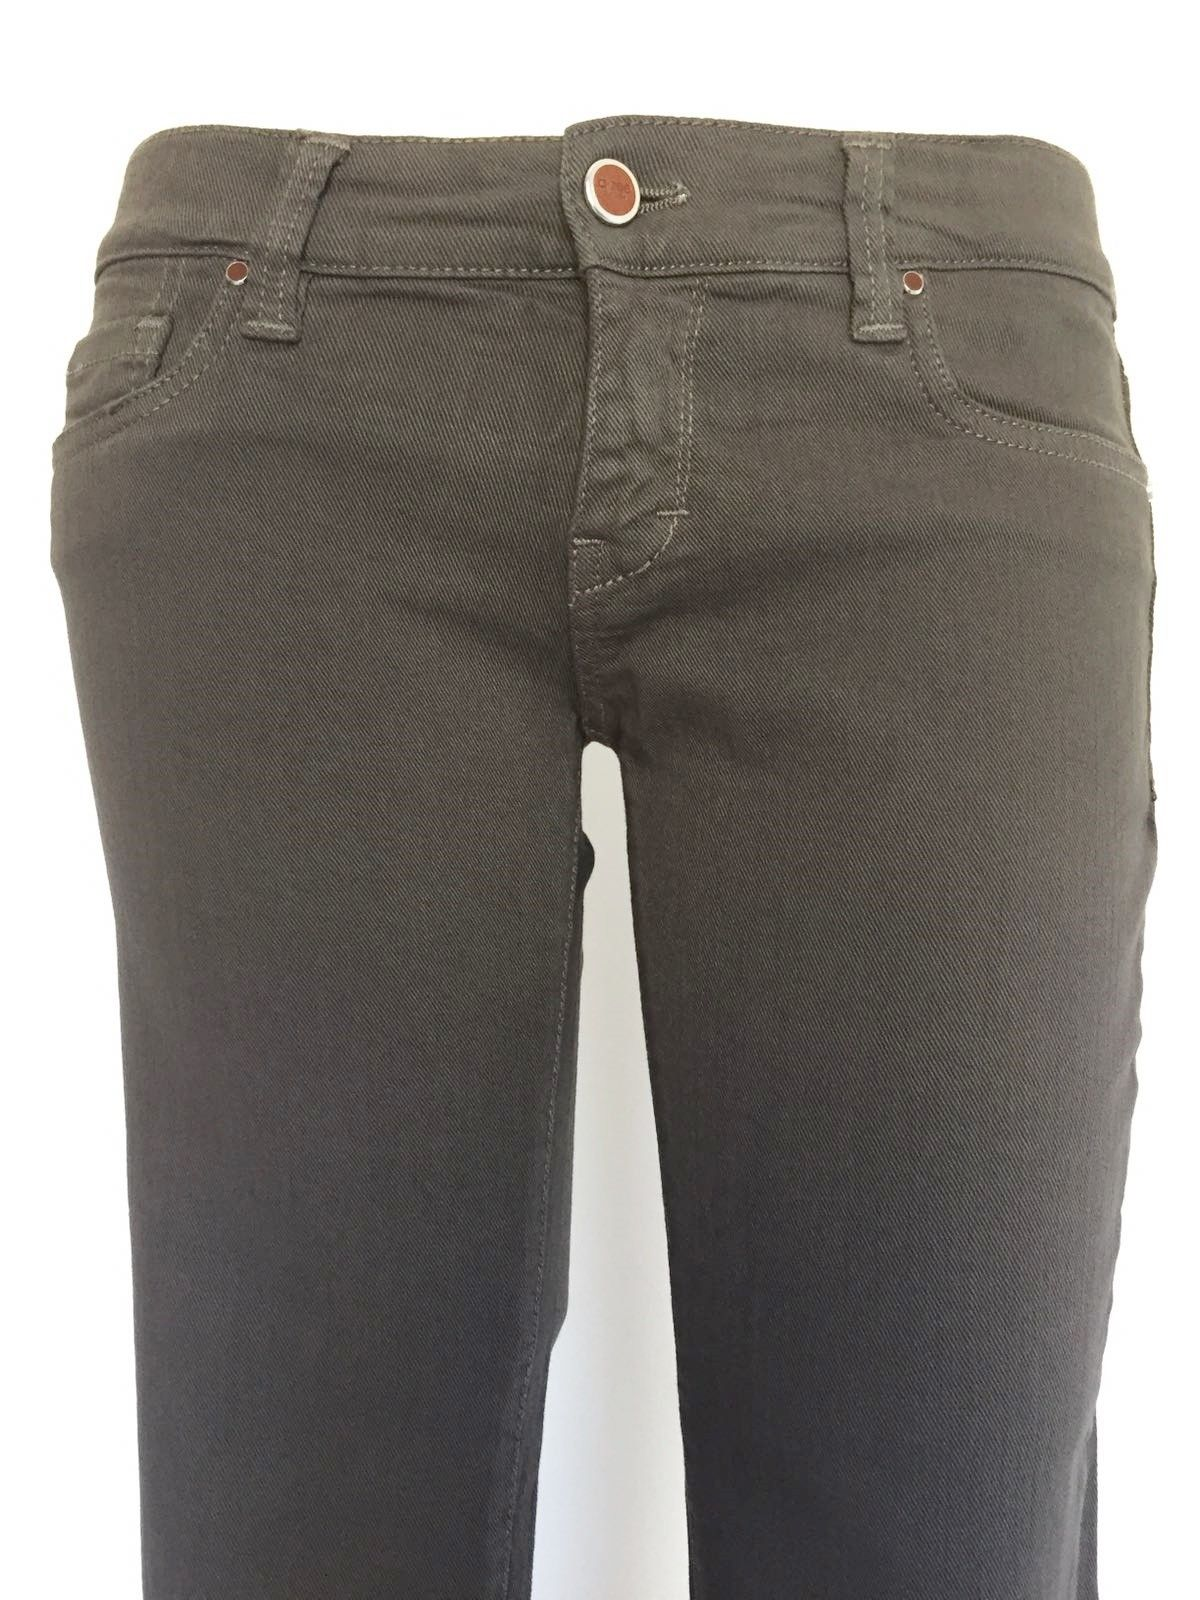 Qzee Stretchy 5 Pocket Jeans Cod.CH0T12